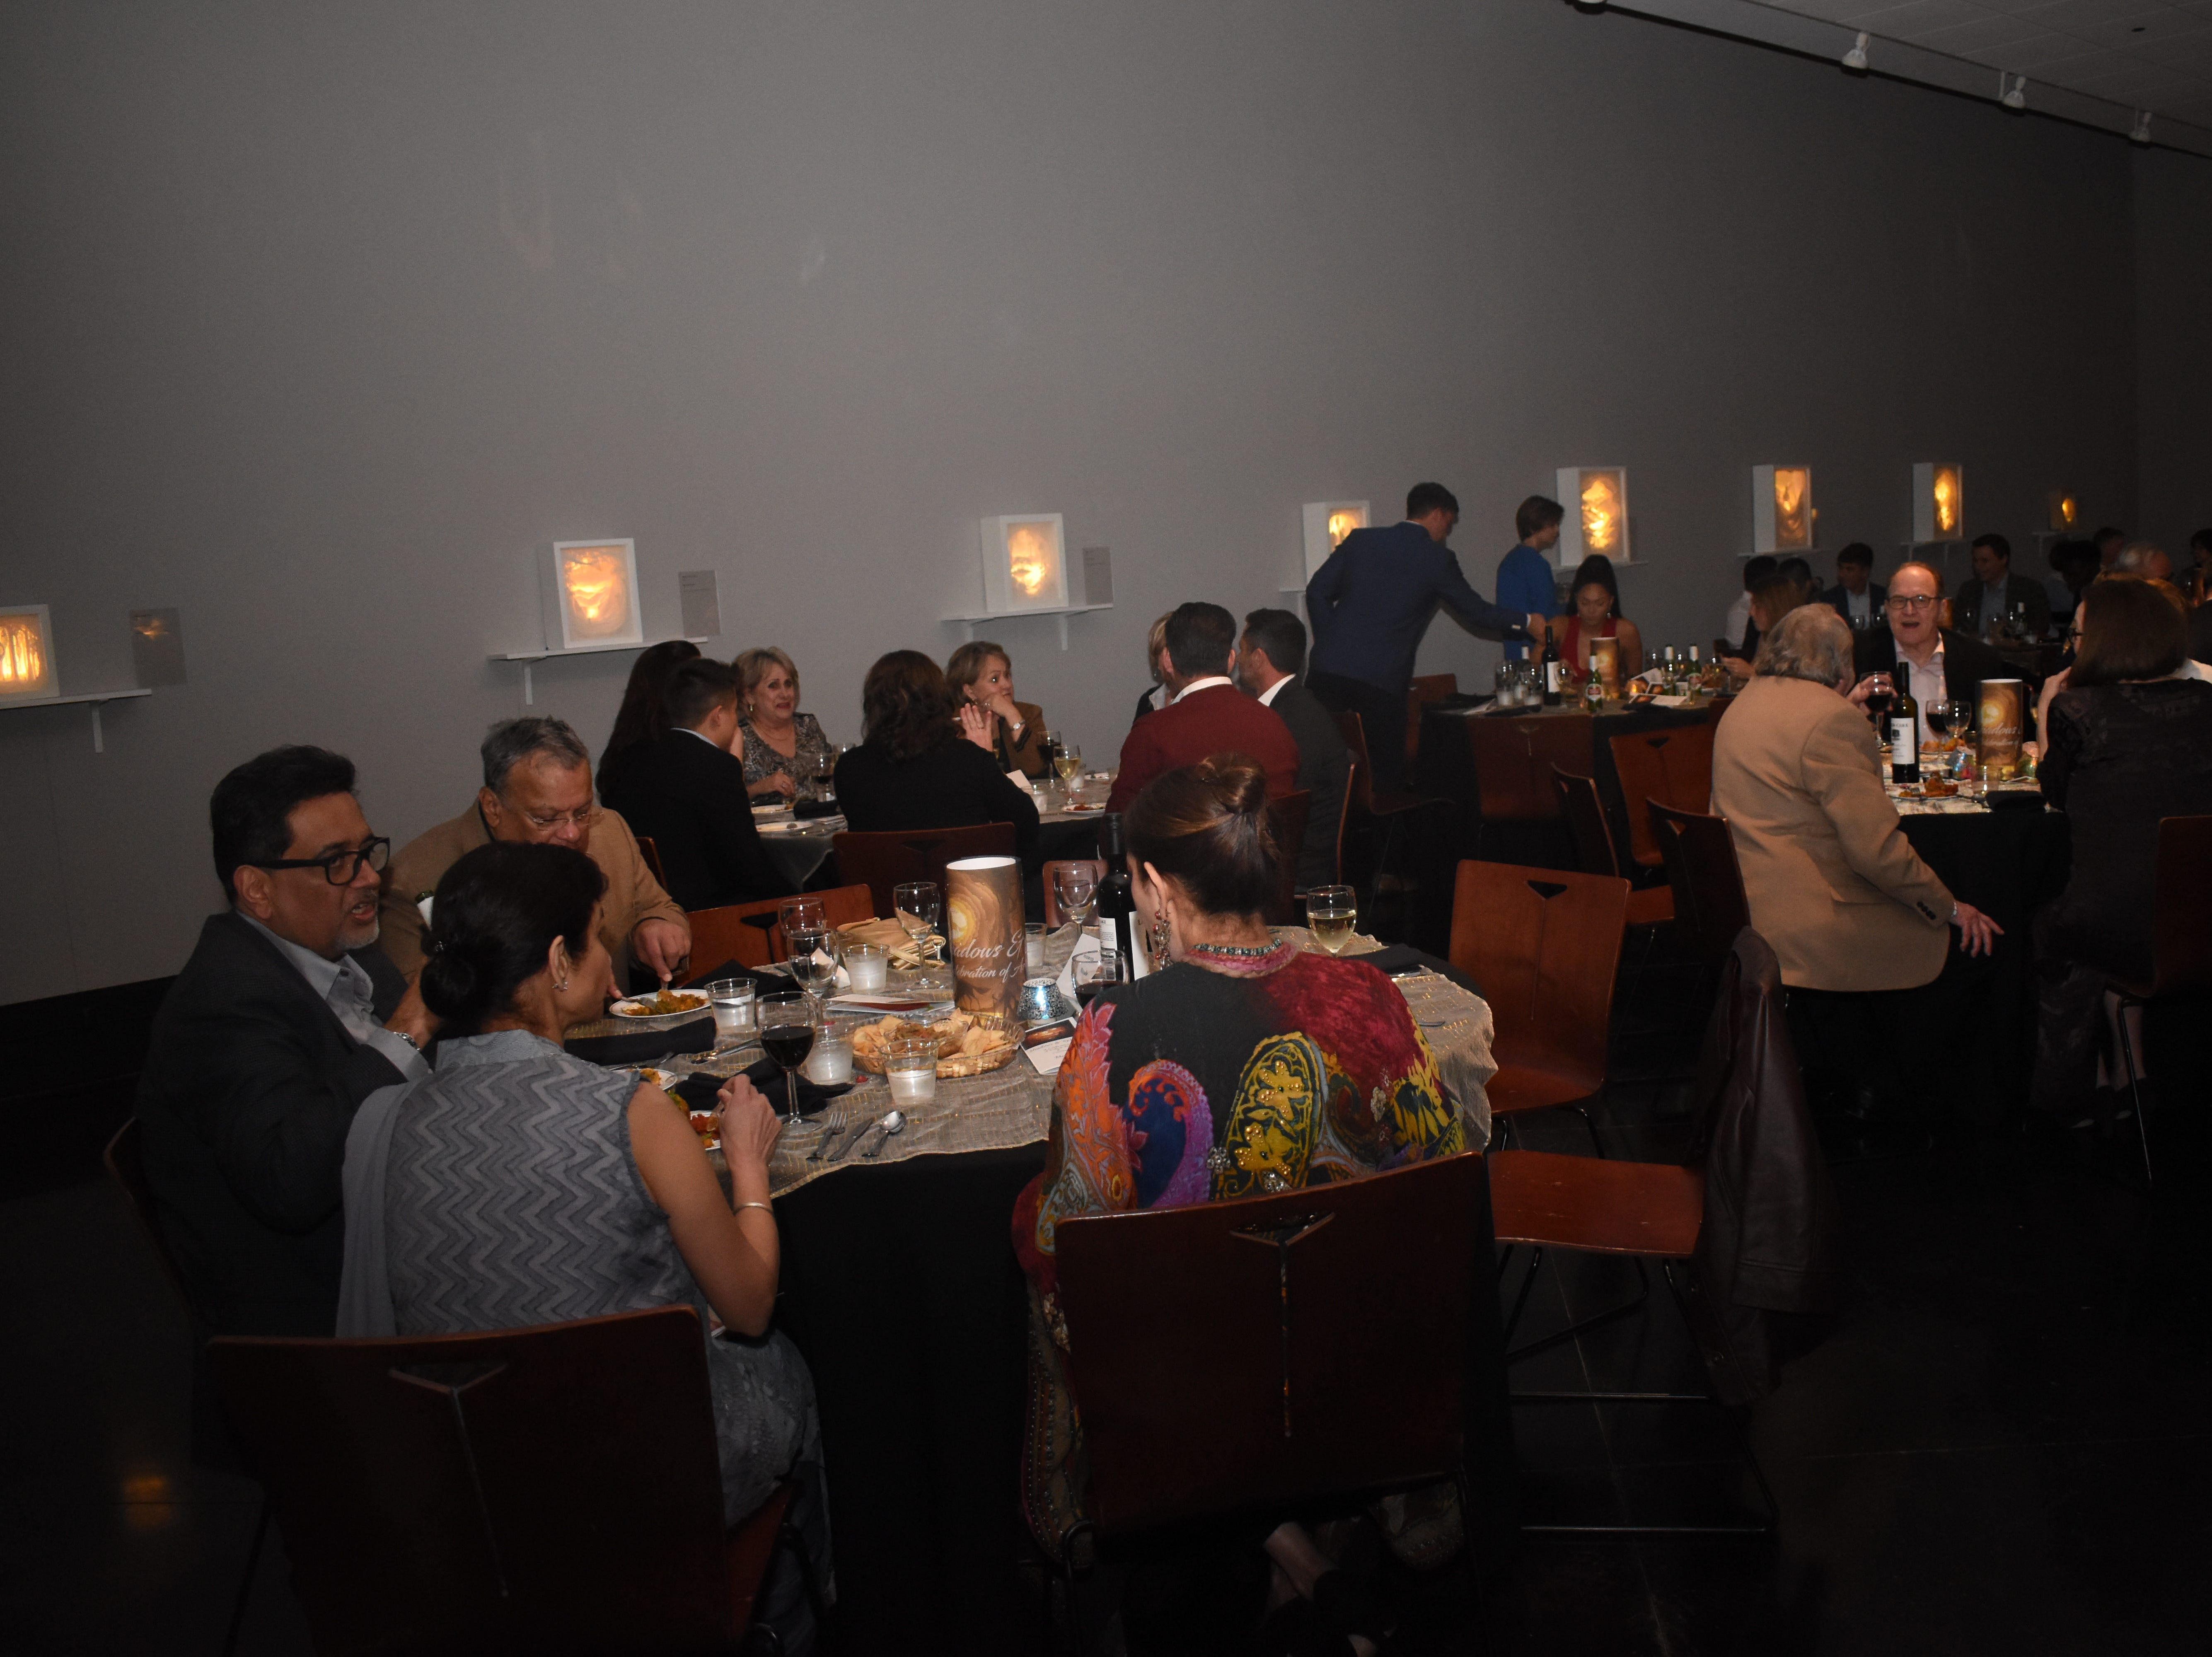 """""""Shadows and Spices: A Celebration of Art and Cuisine"""" was held at the Alexandria Museum of Art Saturday, Feb. 2, 2019. The museum is exhibiting """"Light by the Forest"""" by Indian artists Hari & Deepti who are husband and wife. An Indian dinner was sponsored by Dr. Sudha and Amy Pillarisetti."""